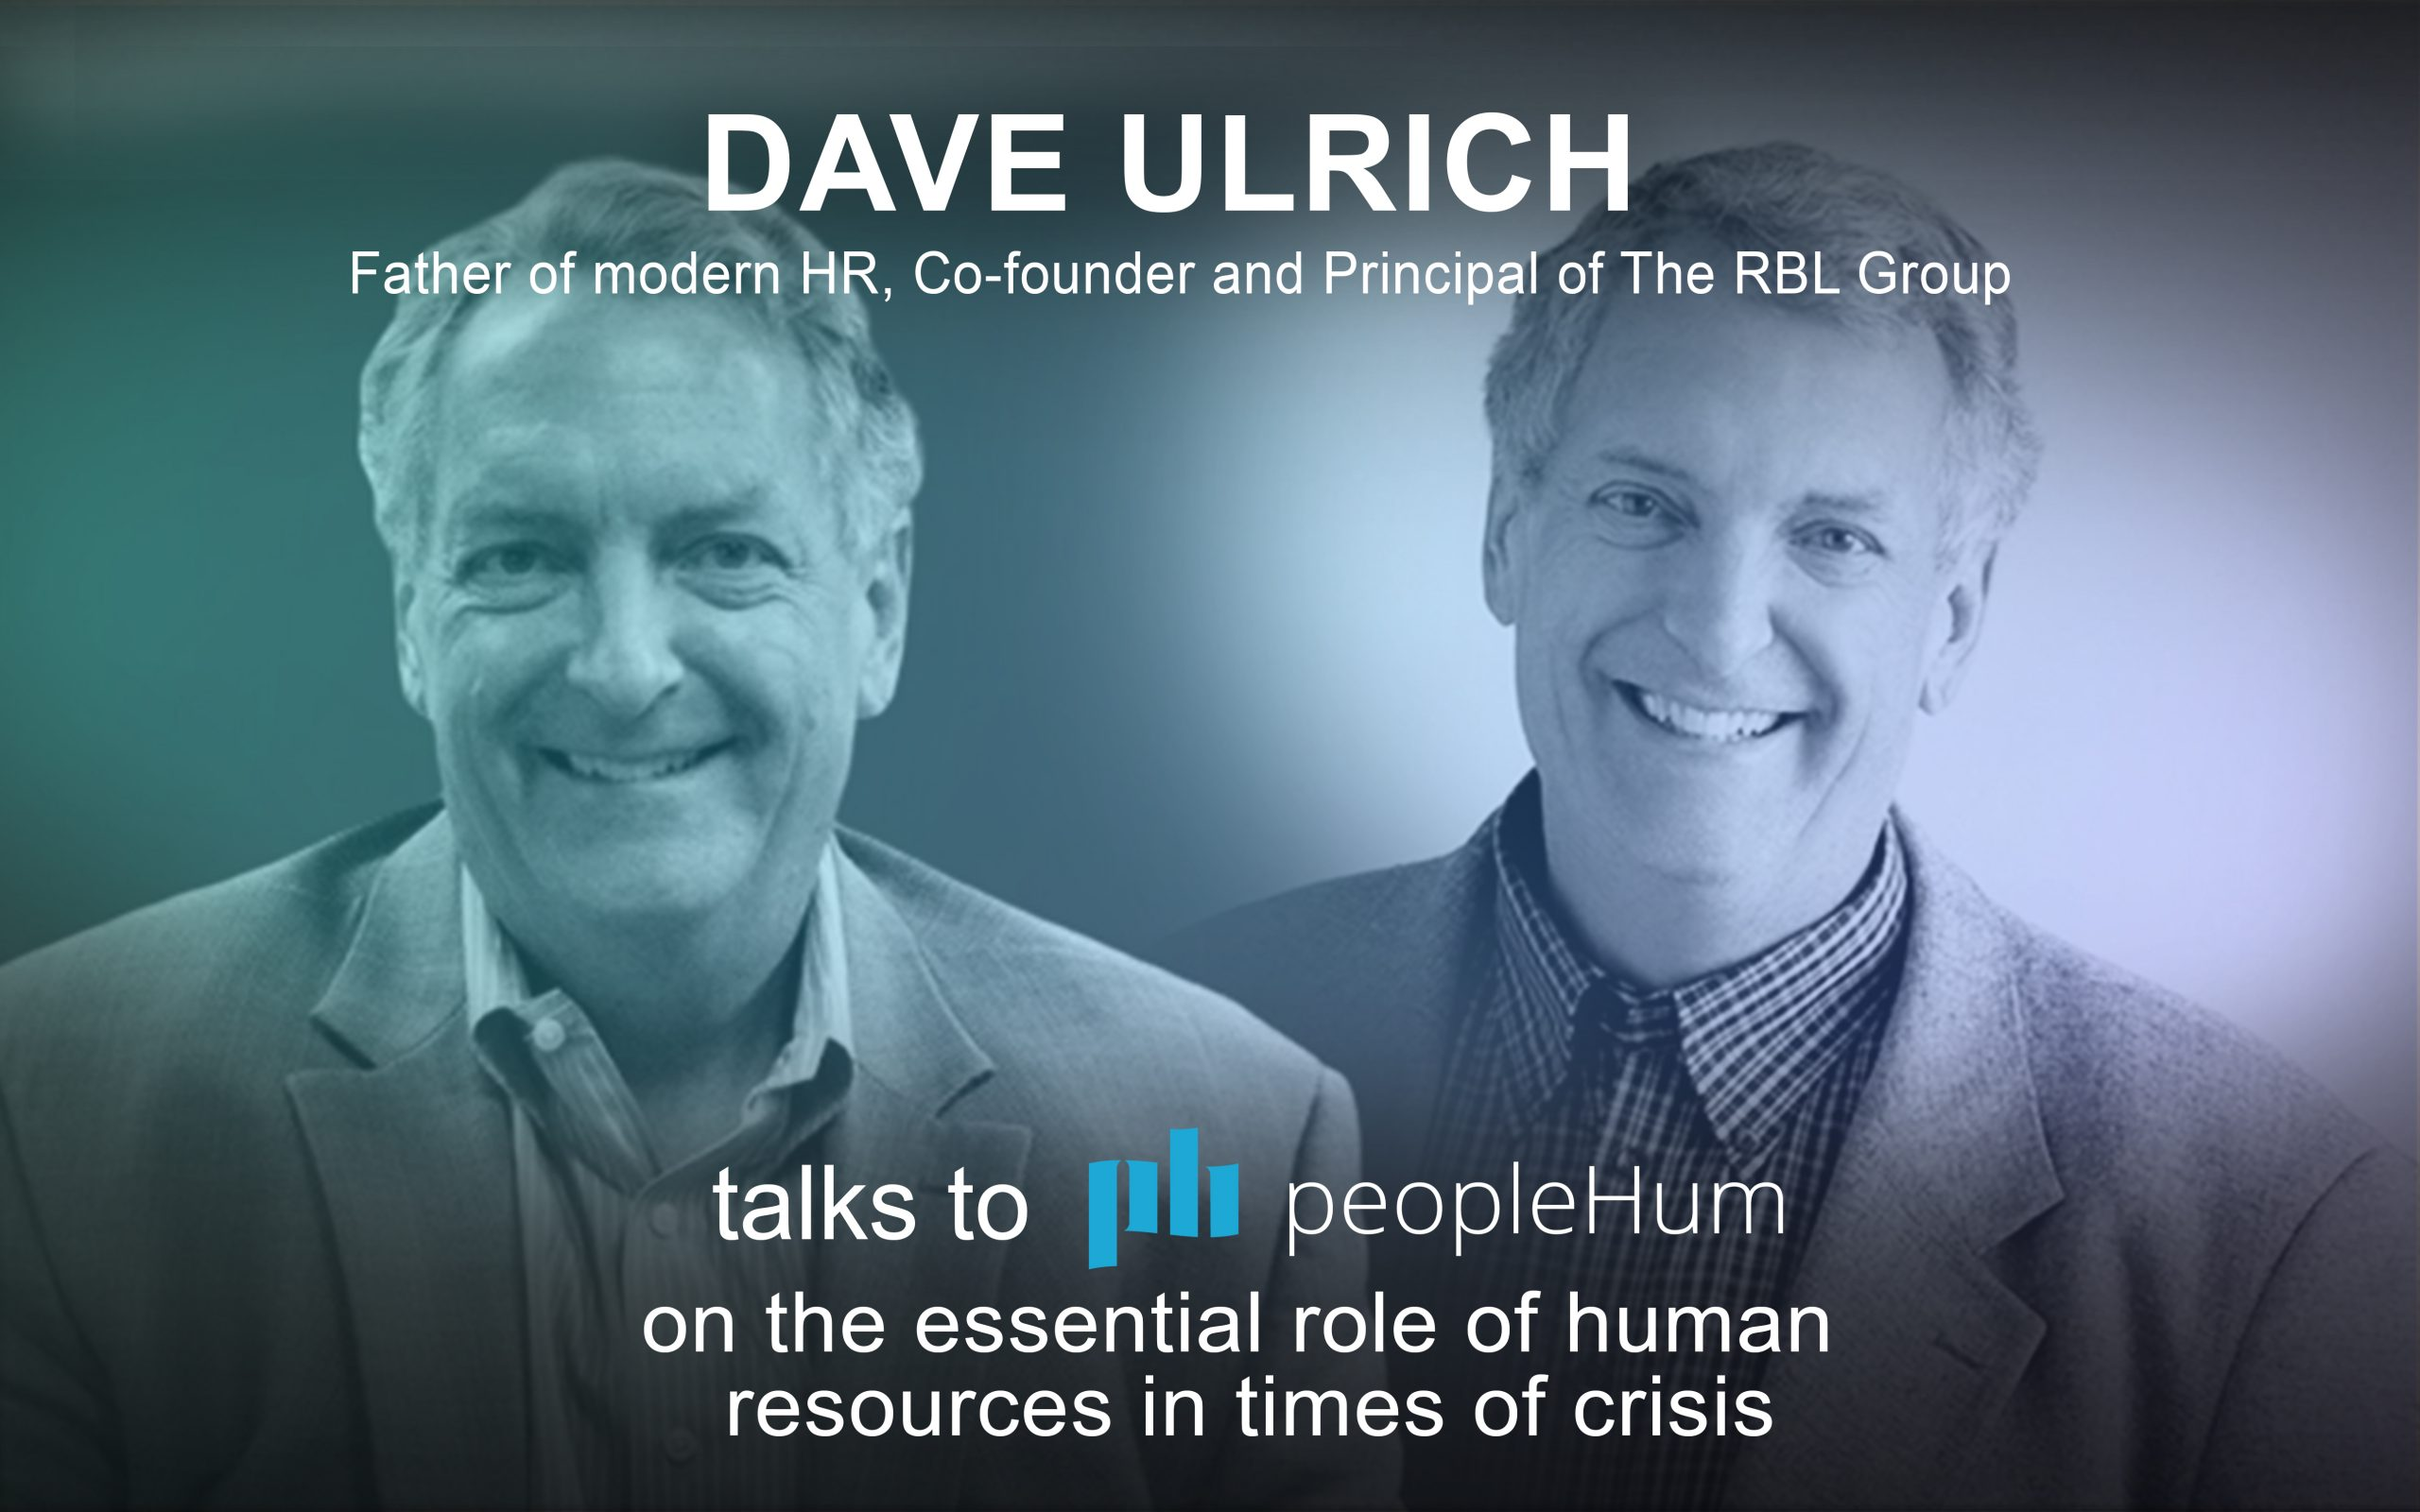 The essential role of human resources in times of crisis - Dave Ulrich [Interview]